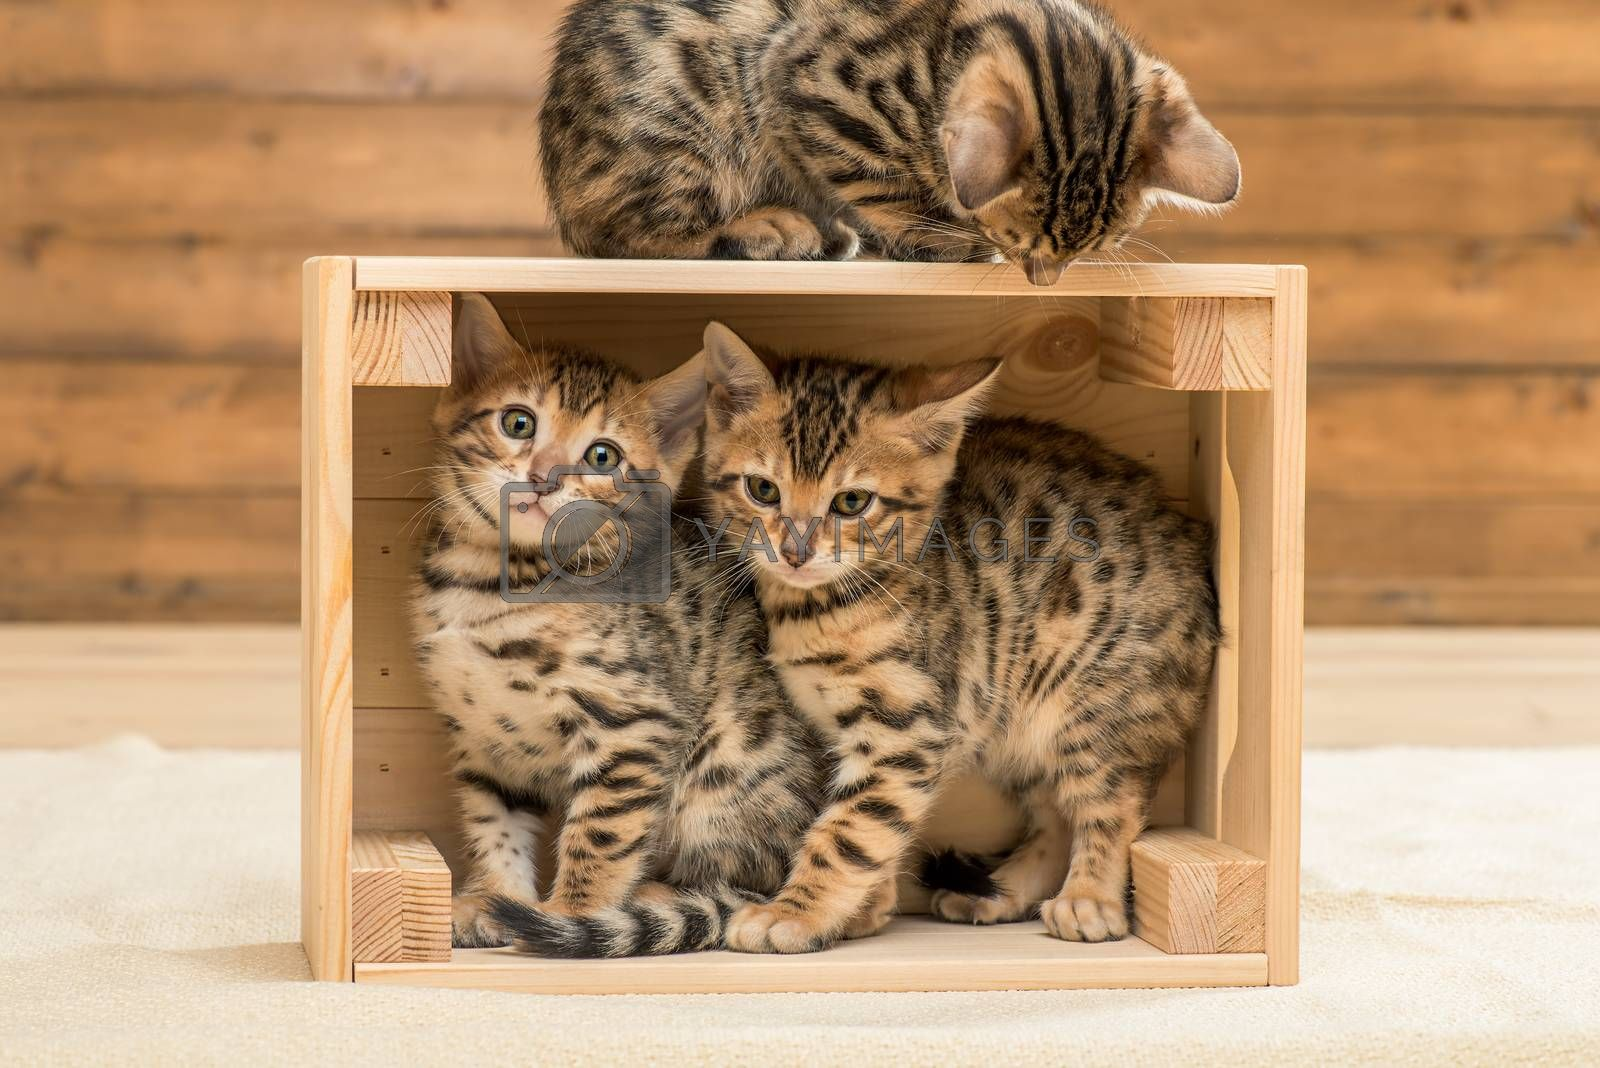 kittens playing in the wooden box, three Bengal kittens by Labunskiy K.